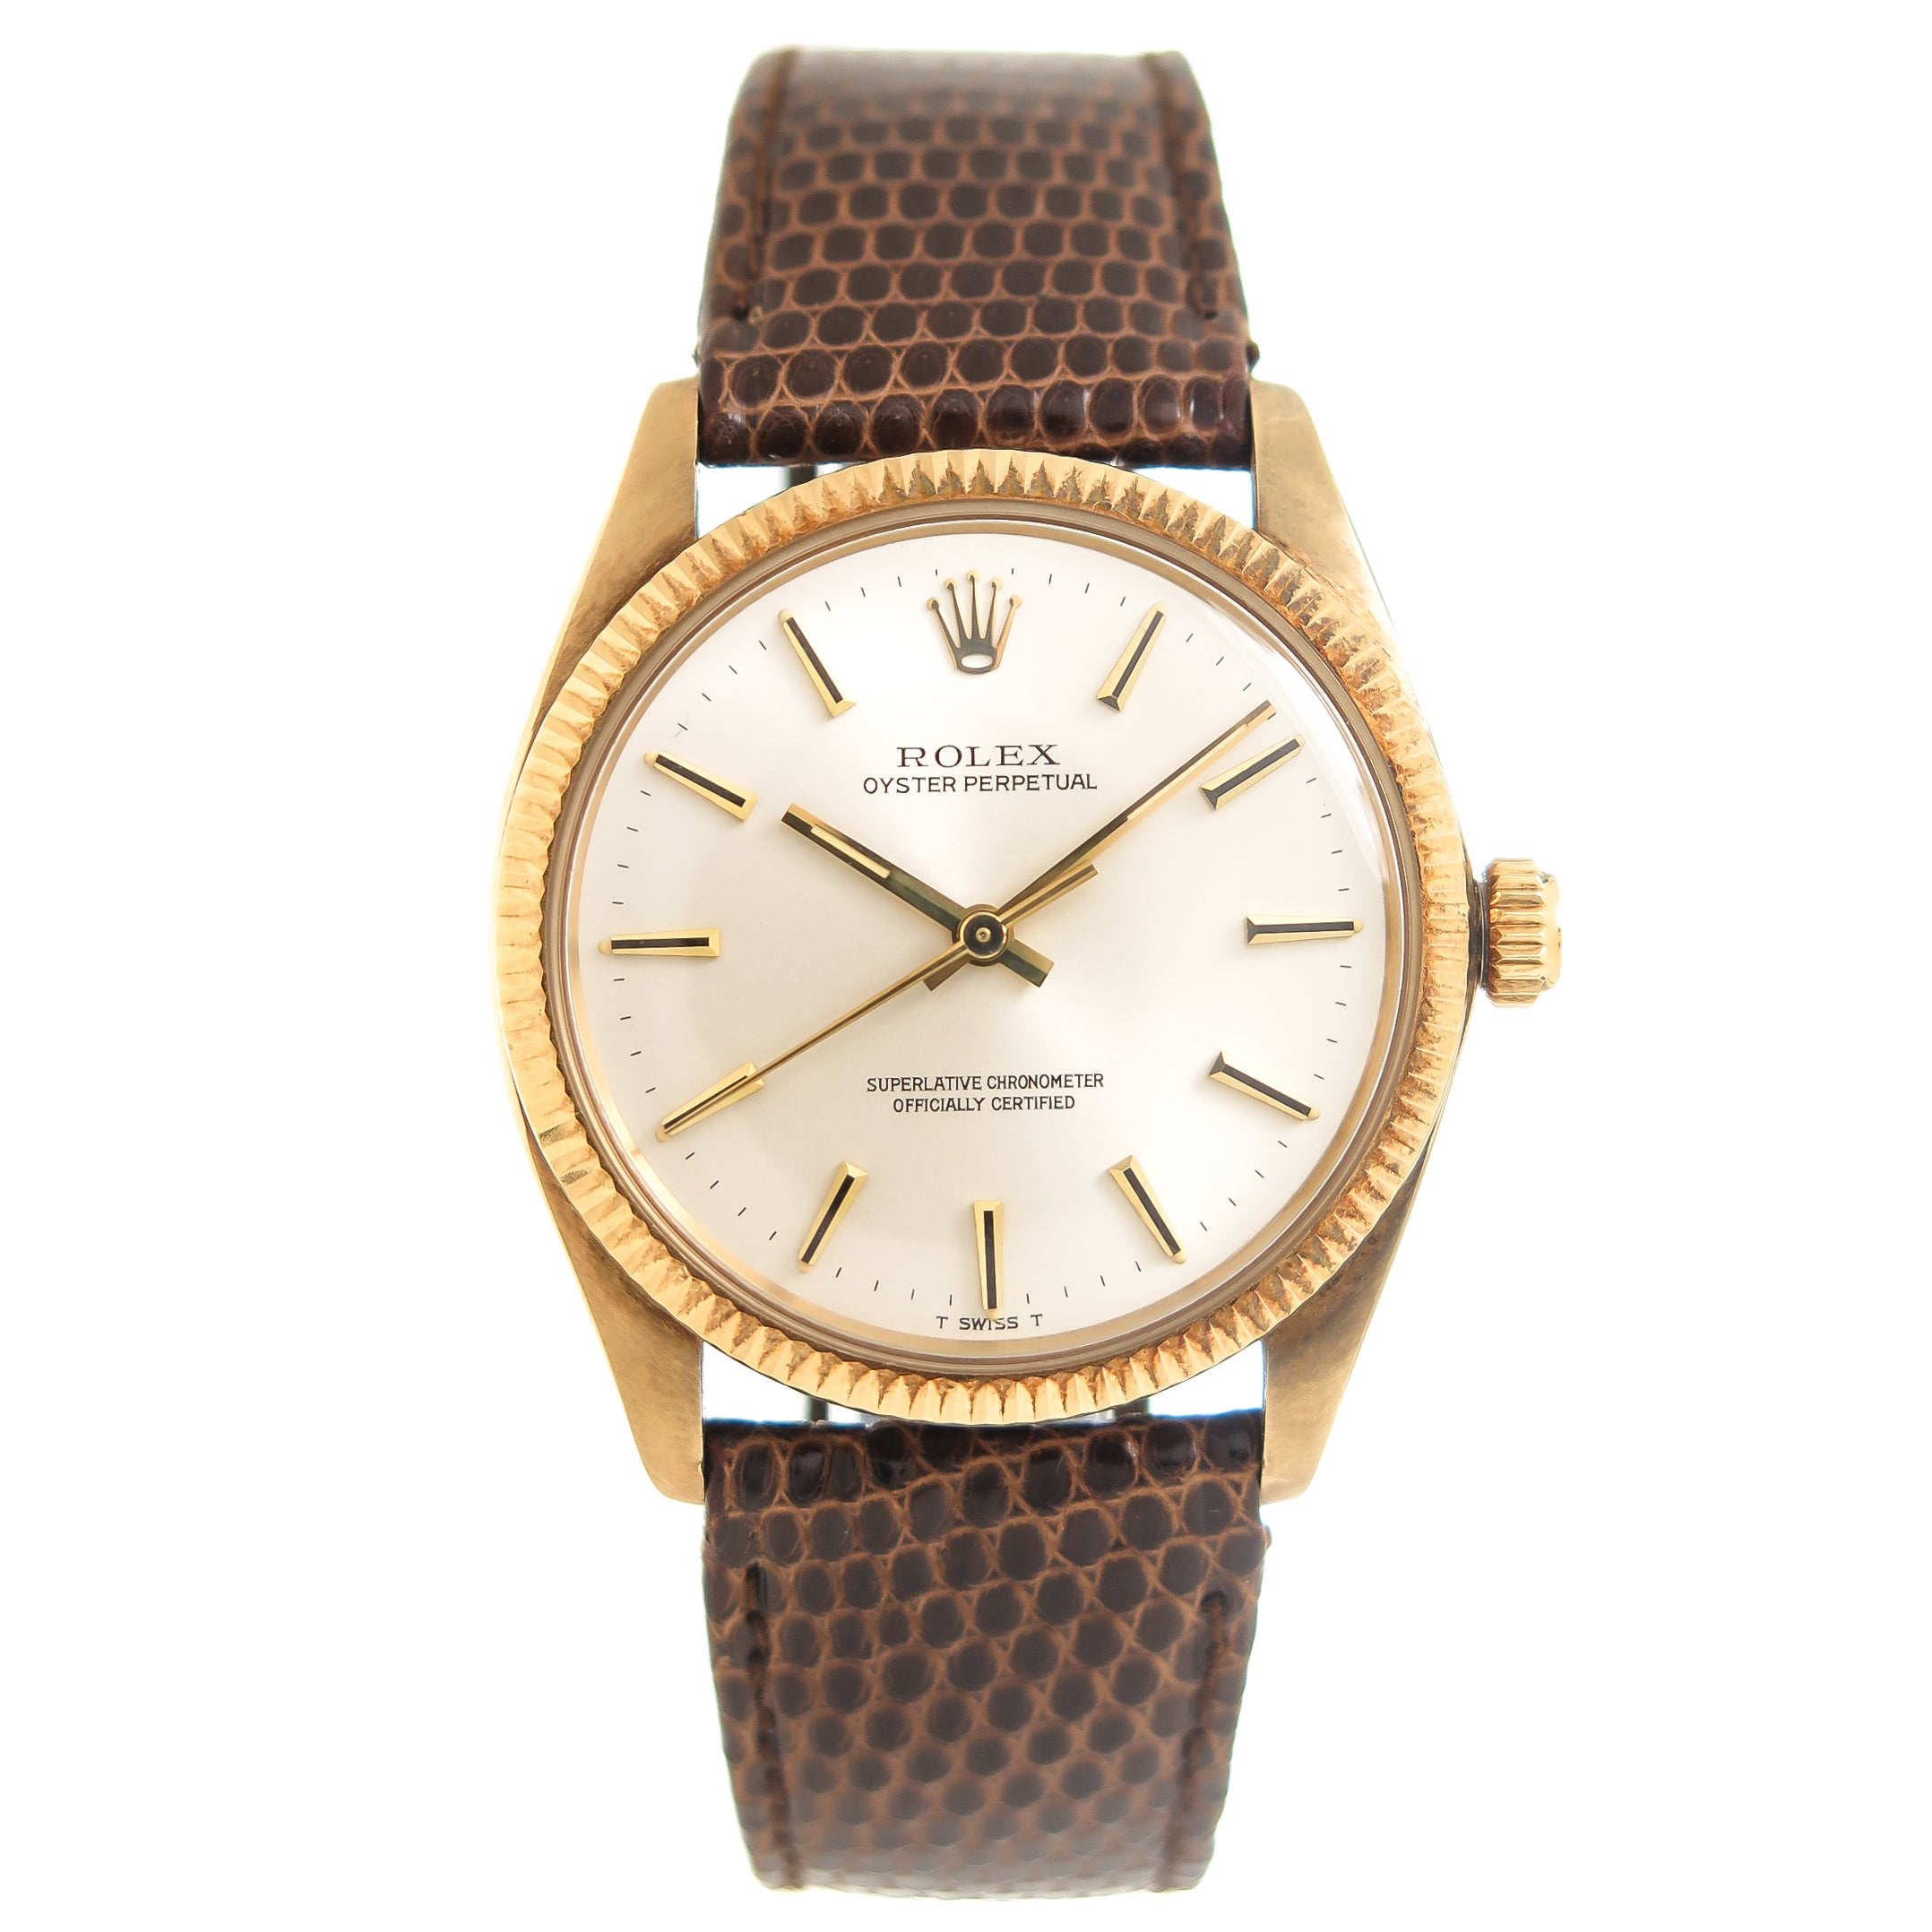 Rolex Yellow Gold Oyster Perpetual Presentation Automatic Wristwatch